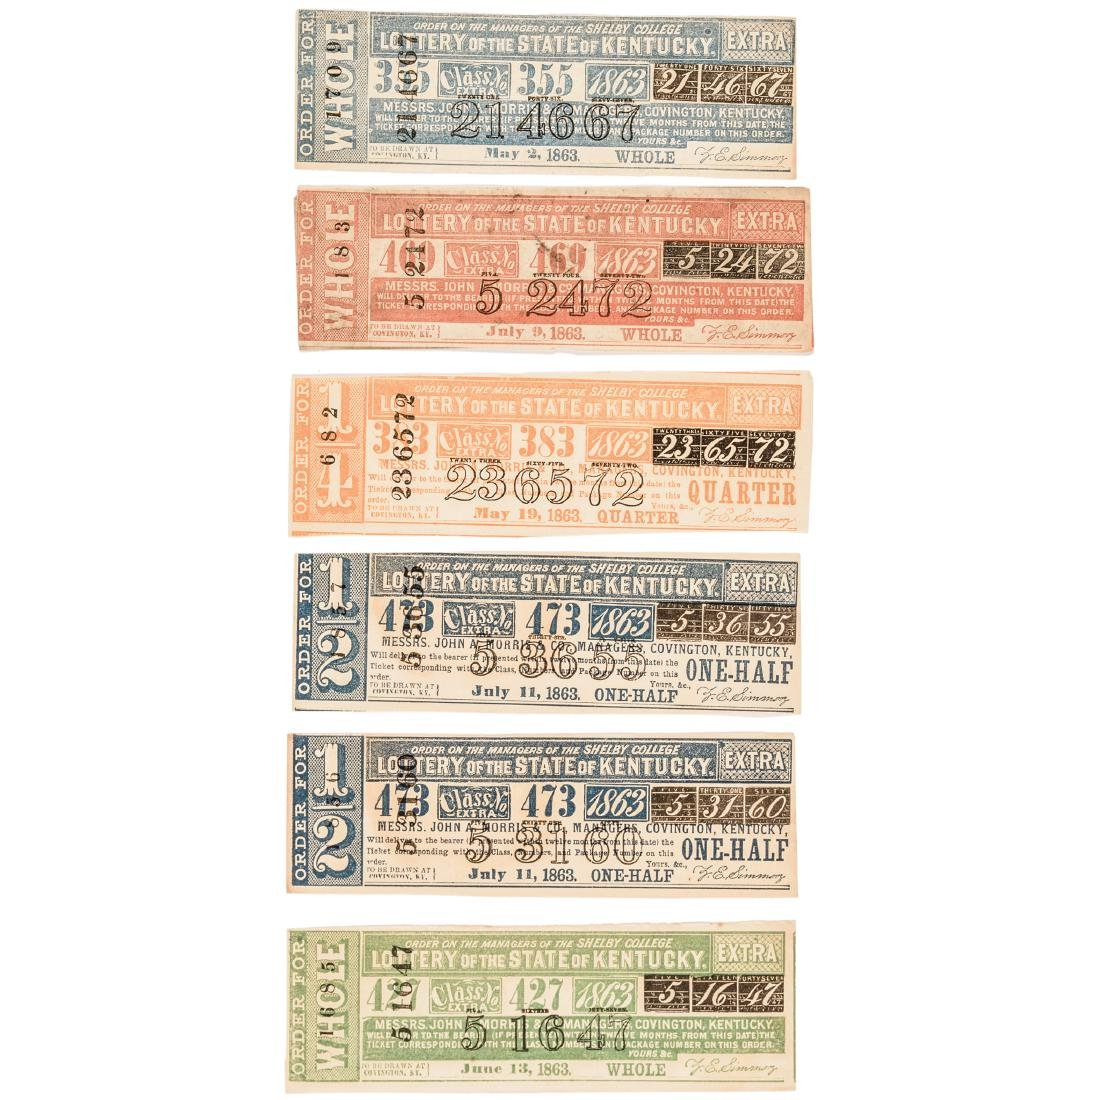 1811-1875 Kentucky Lottery 31 Tickets Collection - 6